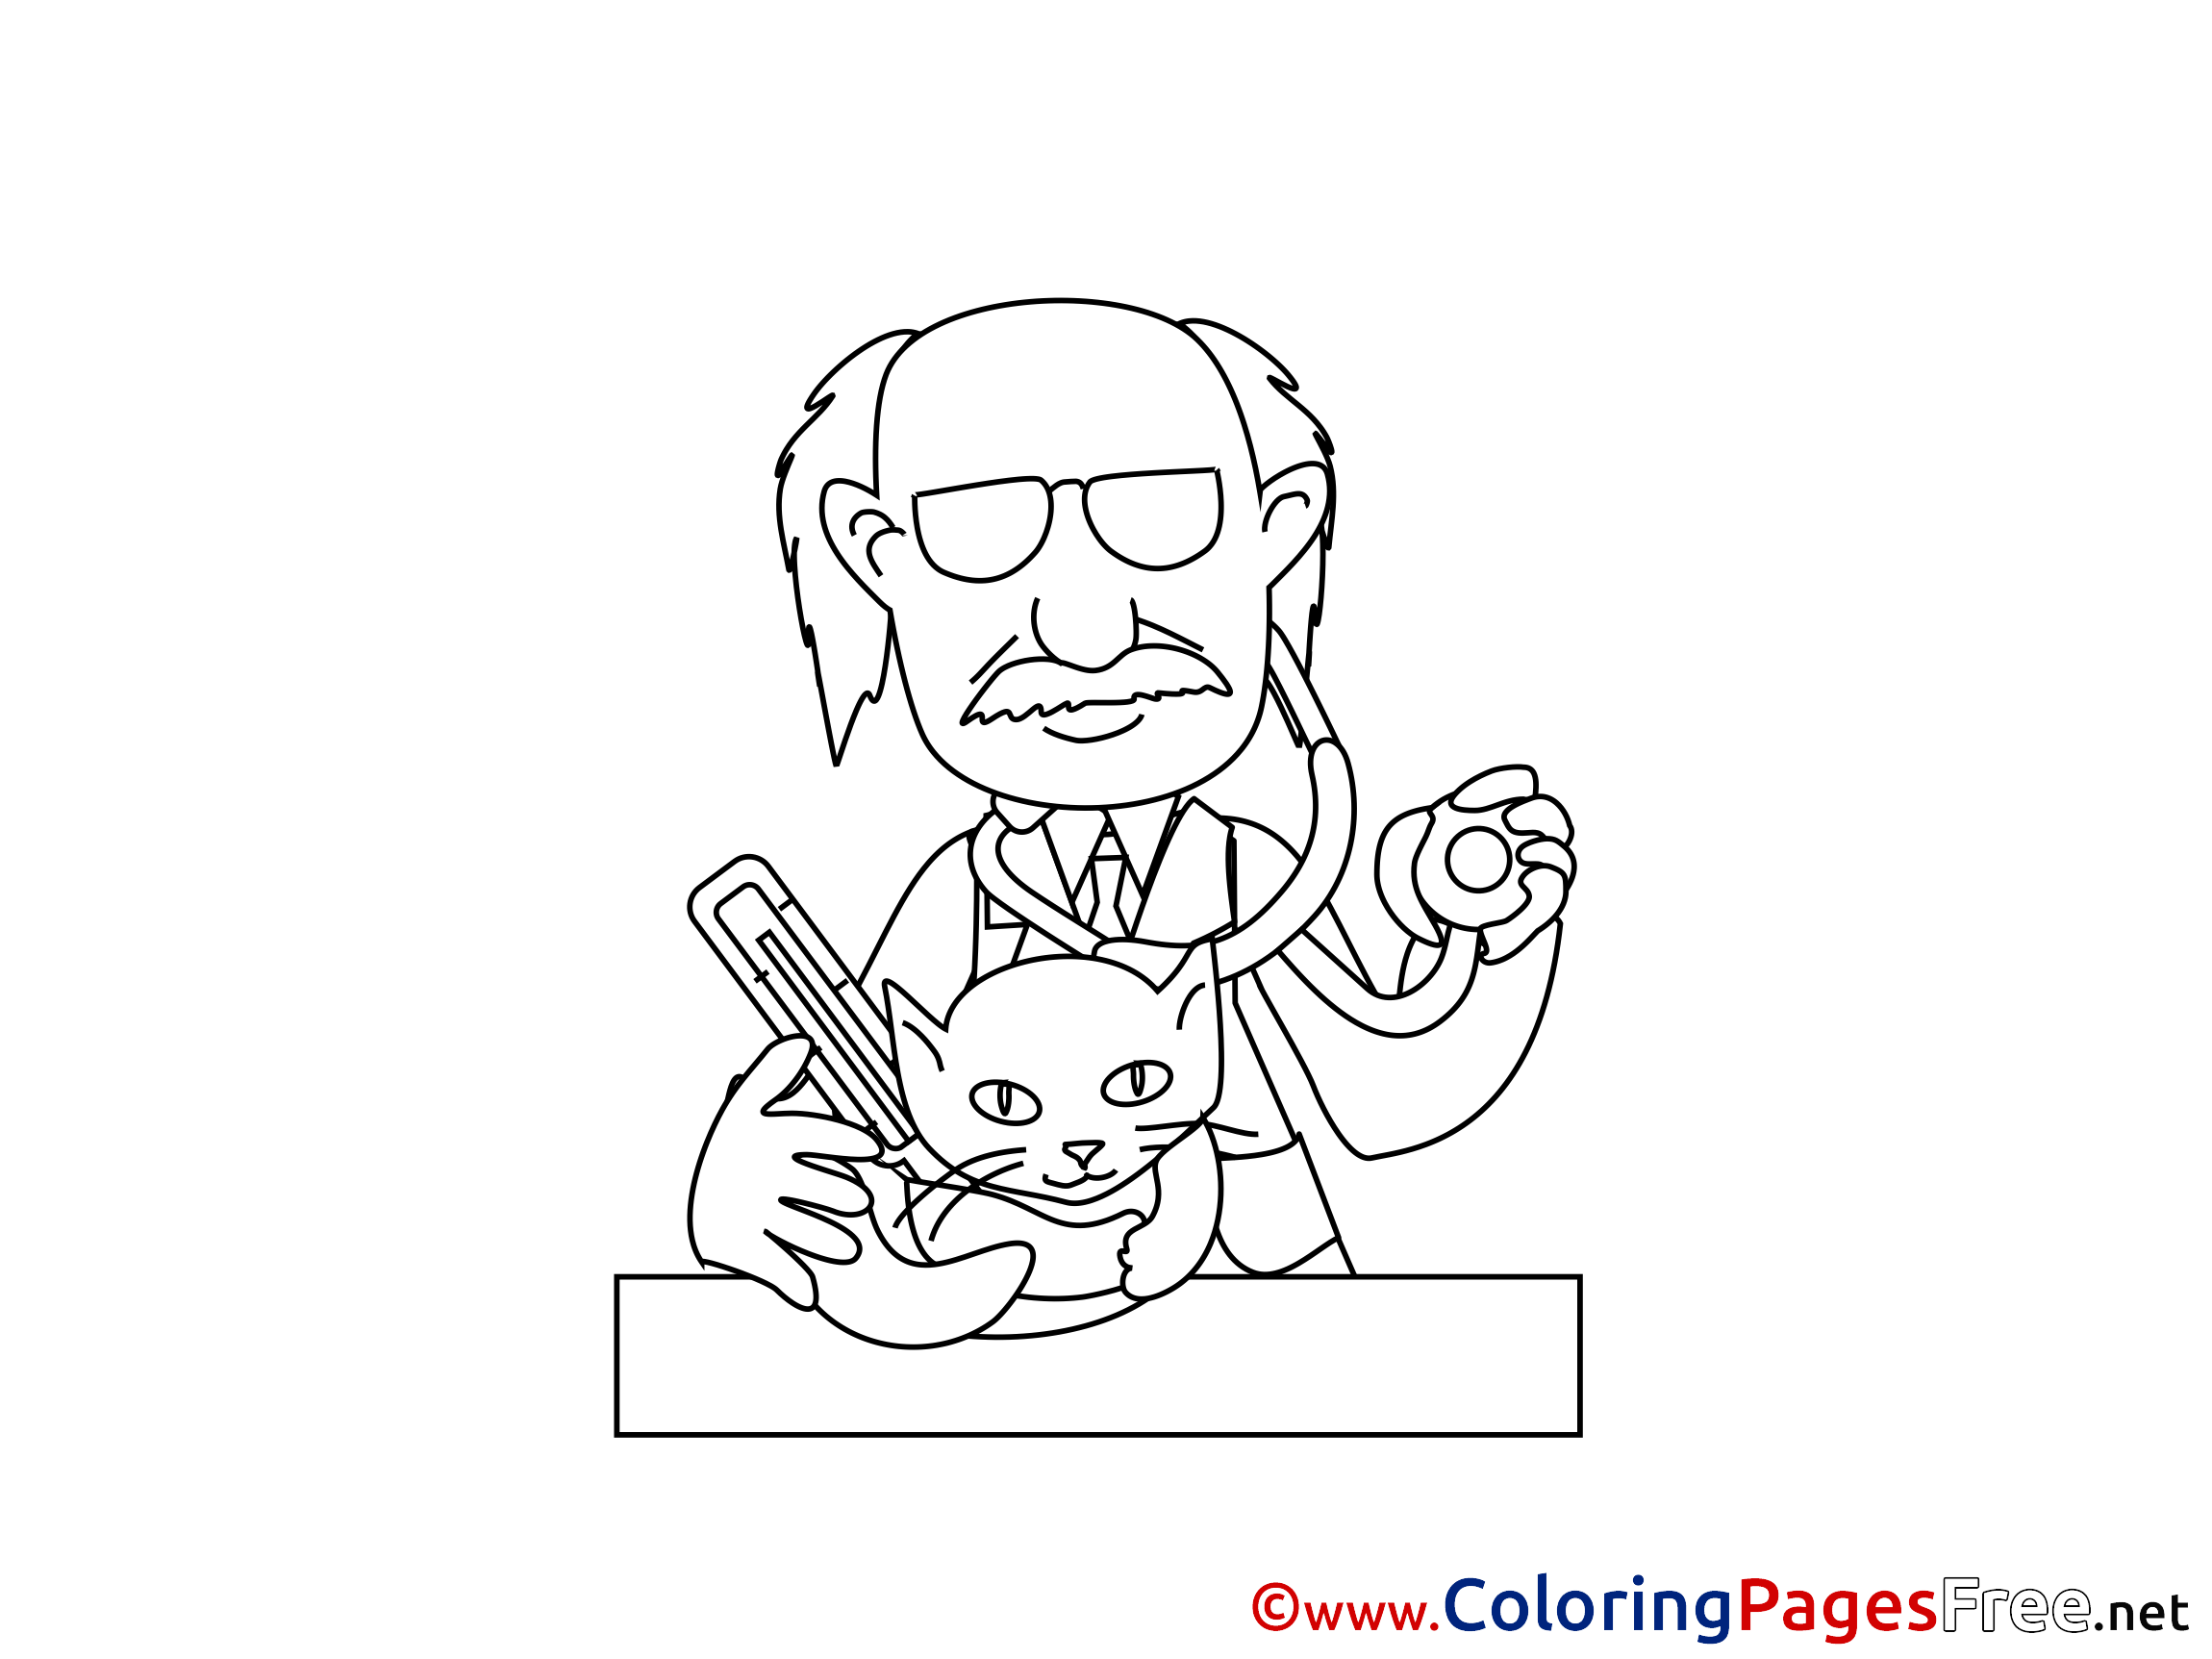 Free printable coloring pages veterinarians - Free Printable Coloring Pages Veterinarians 25